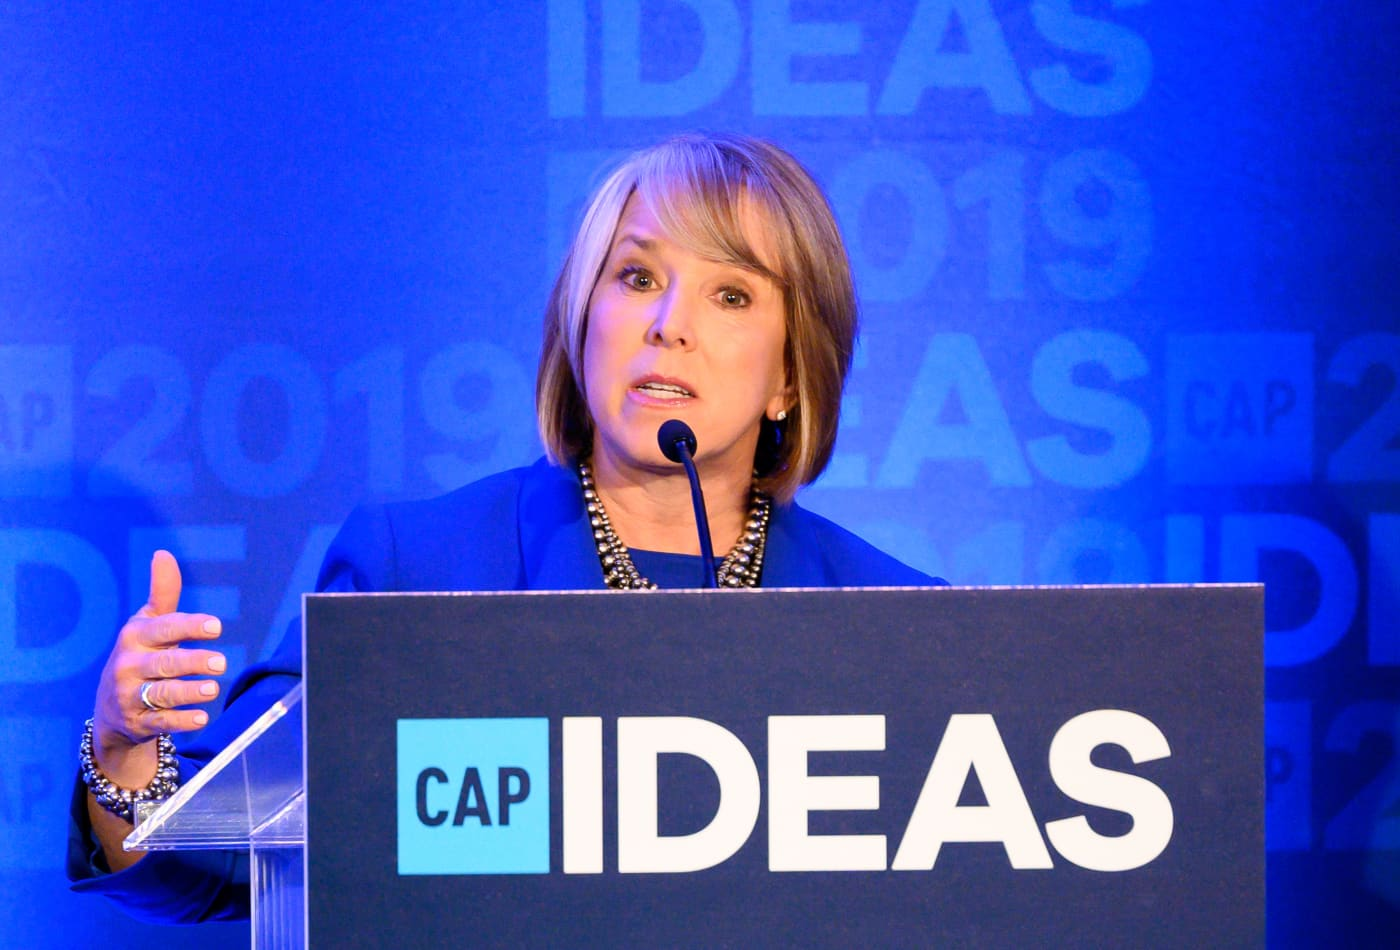 A prominent health record in a pandemic: Why NM Gov. Michelle Lujan Grisham could be Biden's VP pick